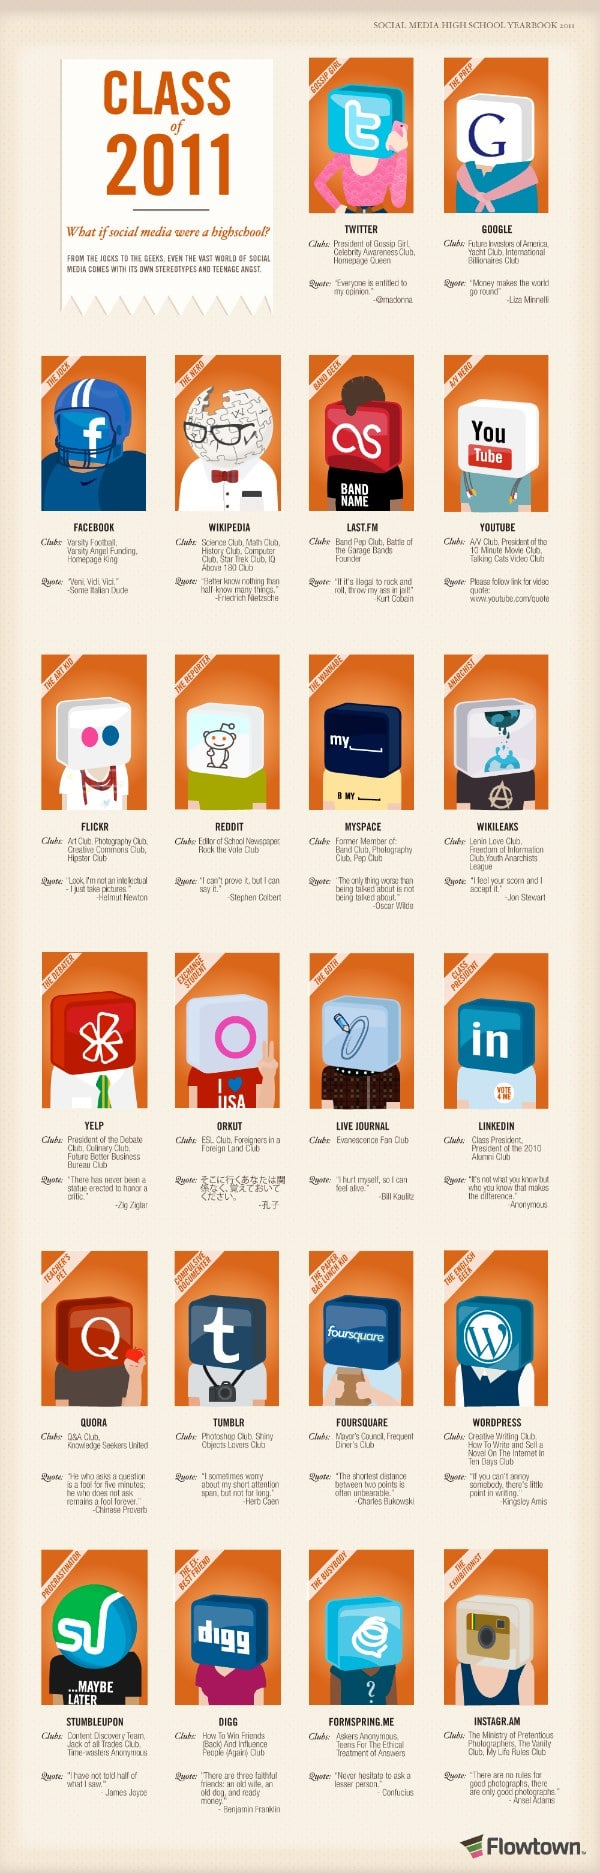 Social Networking Services Highschool Infographic